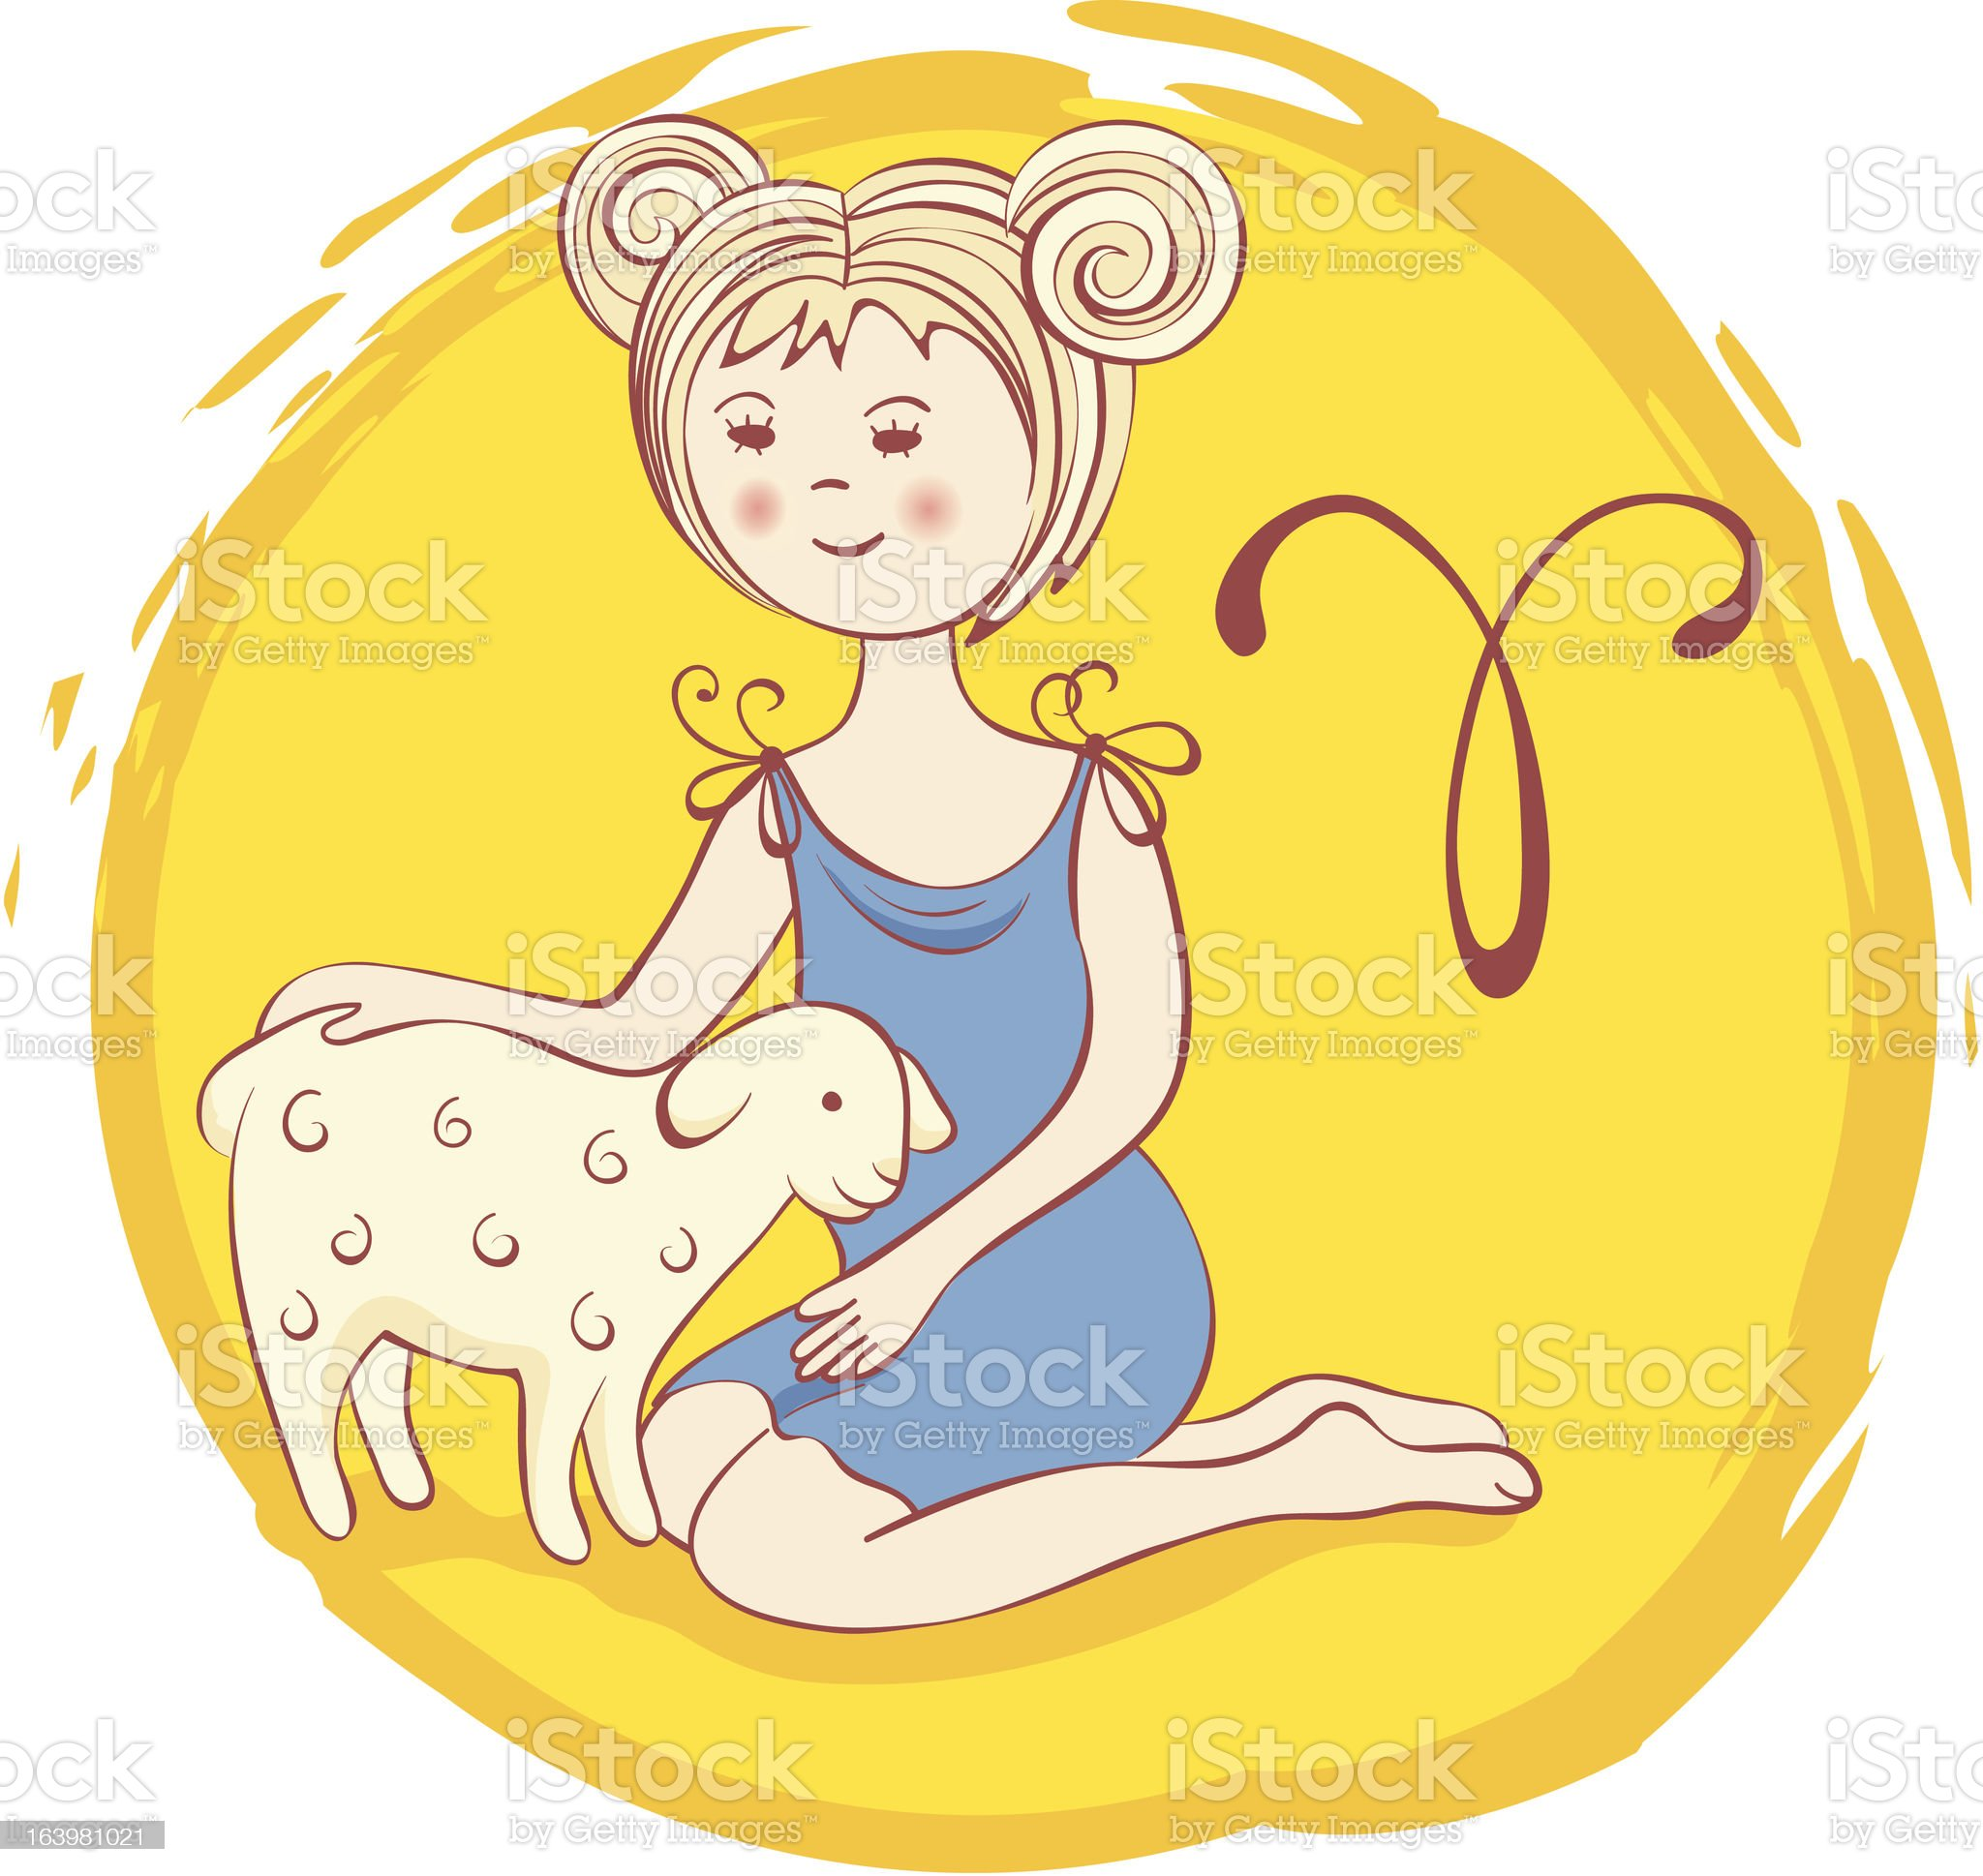 Signs of the Zodiac - Aries royalty-free stock vector art